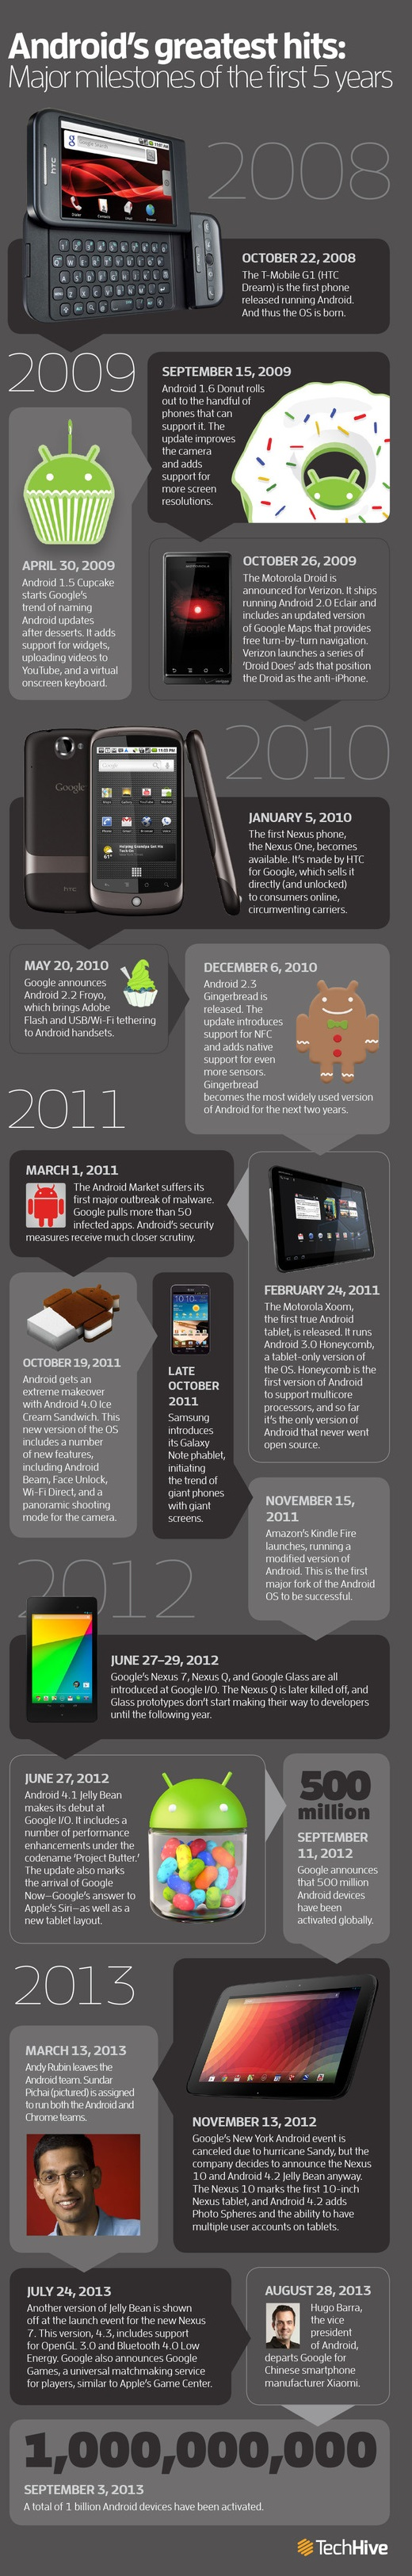 Infographie Android